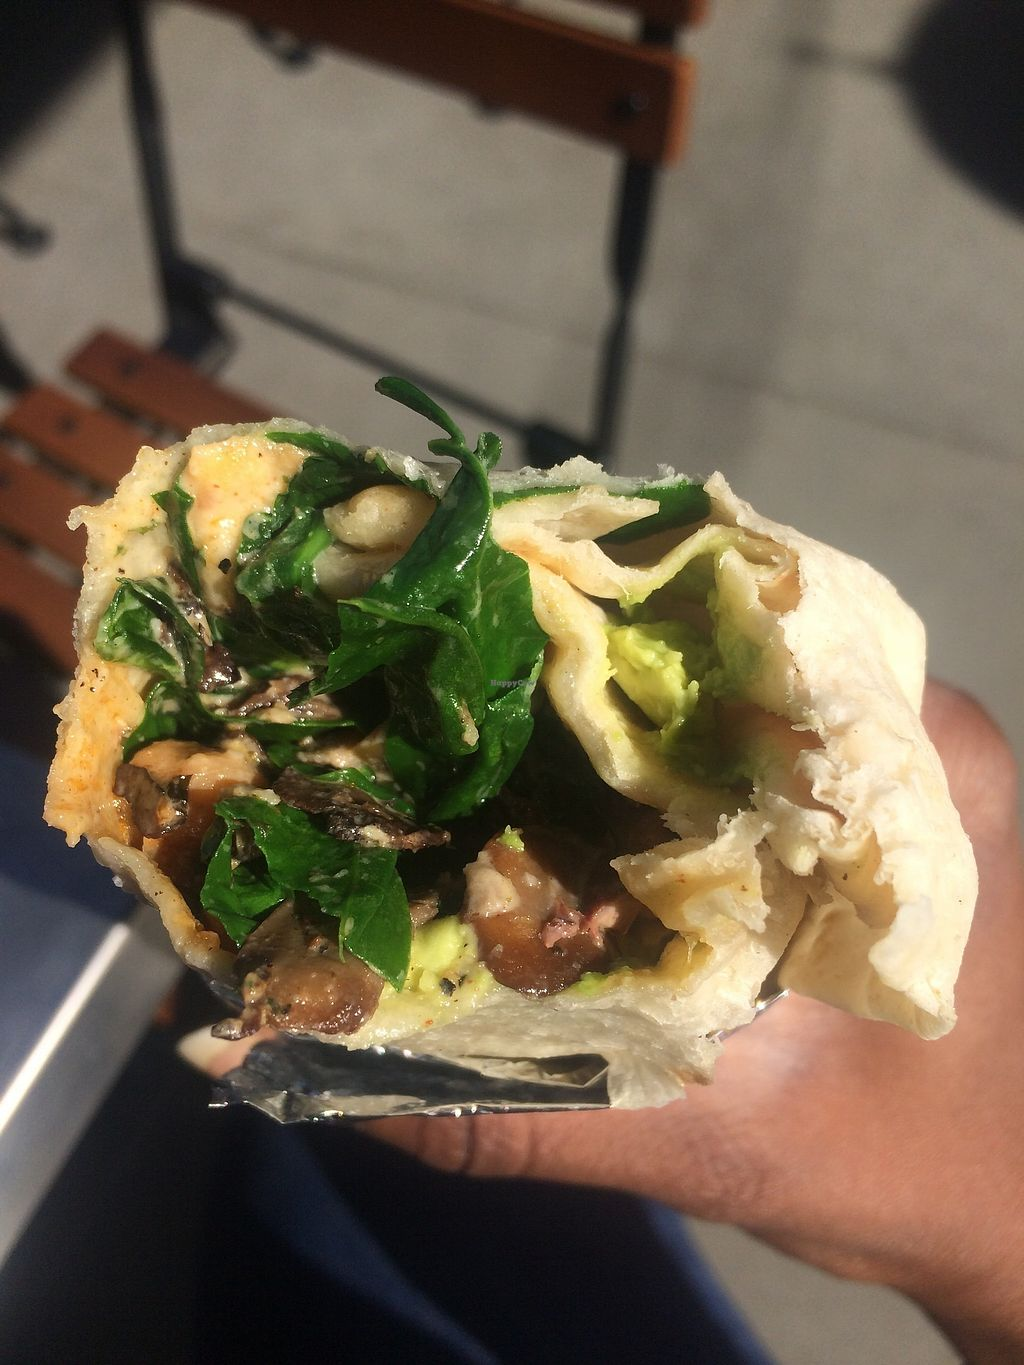 "Photo of Cafe Smitten  by <a href=""/members/profile/glassesgirl79"">glassesgirl79</a> <br/>Vegan burrito  <br/> December 17, 2017  - <a href='/contact/abuse/image/107421/336650'>Report</a>"